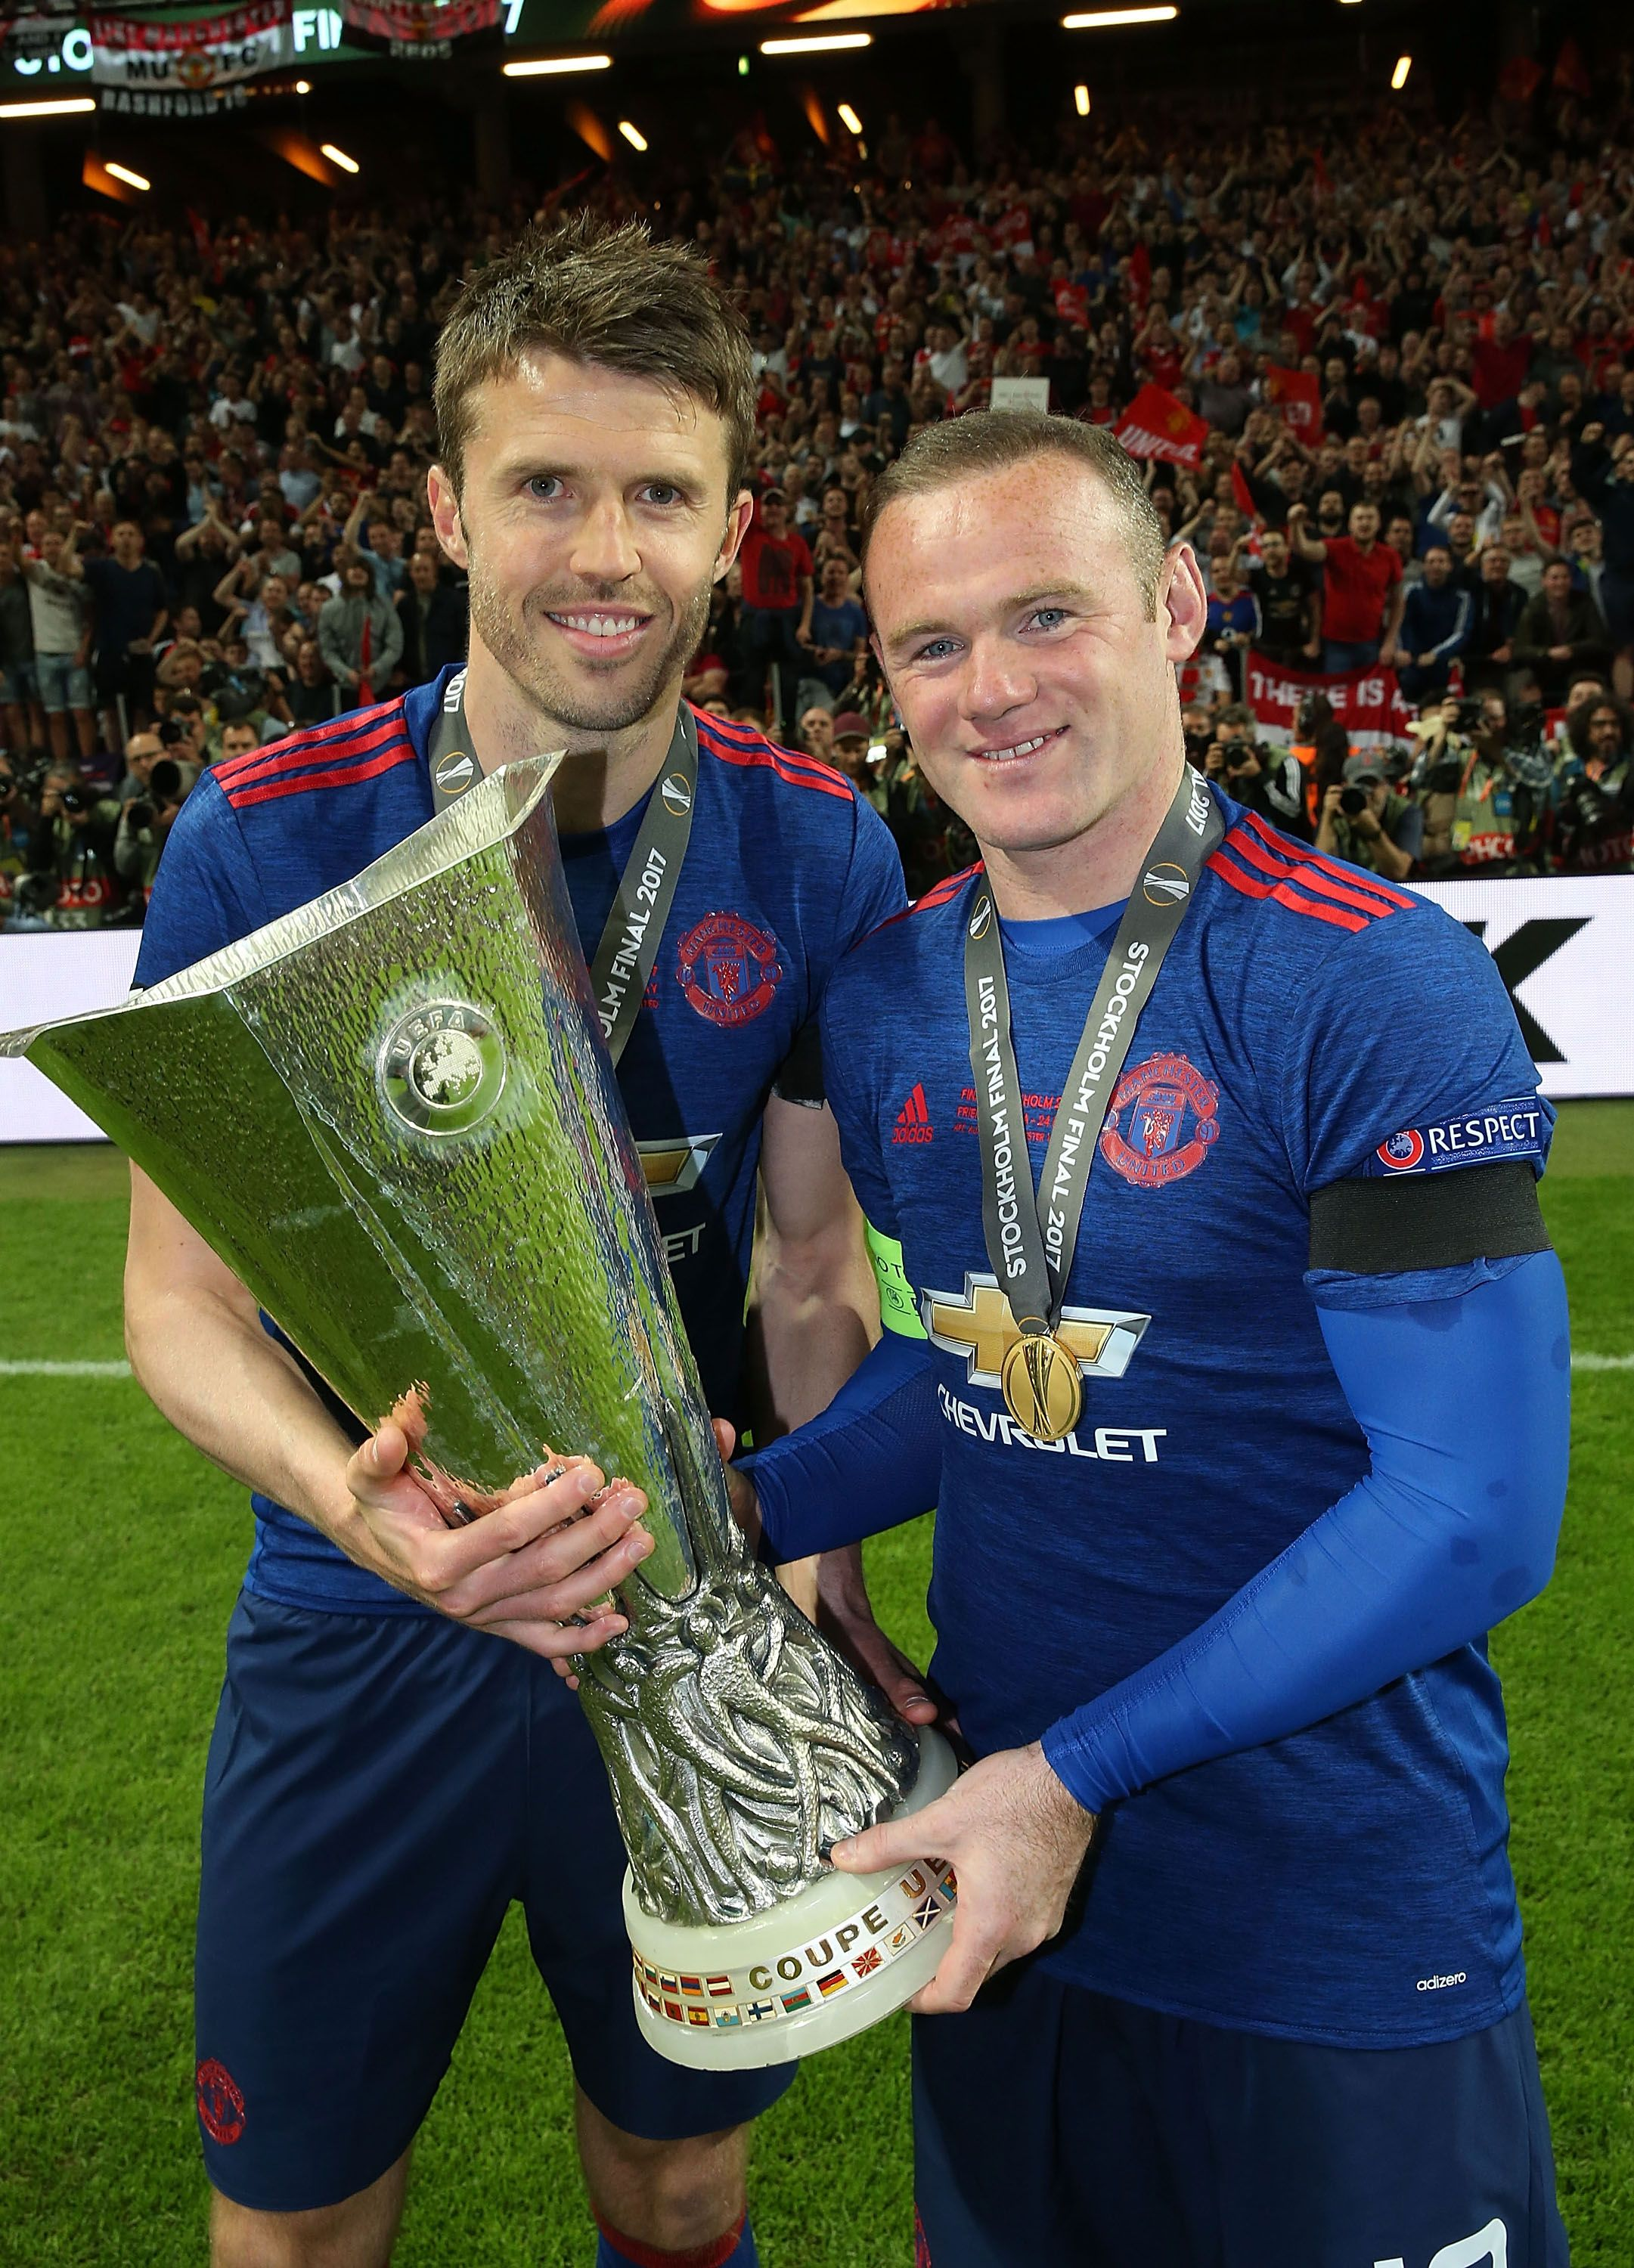 Gallery Manchester United With The Europa League Trophy Official Manchester United Web Manchester United Champions Manchester United Shirt Manchester United